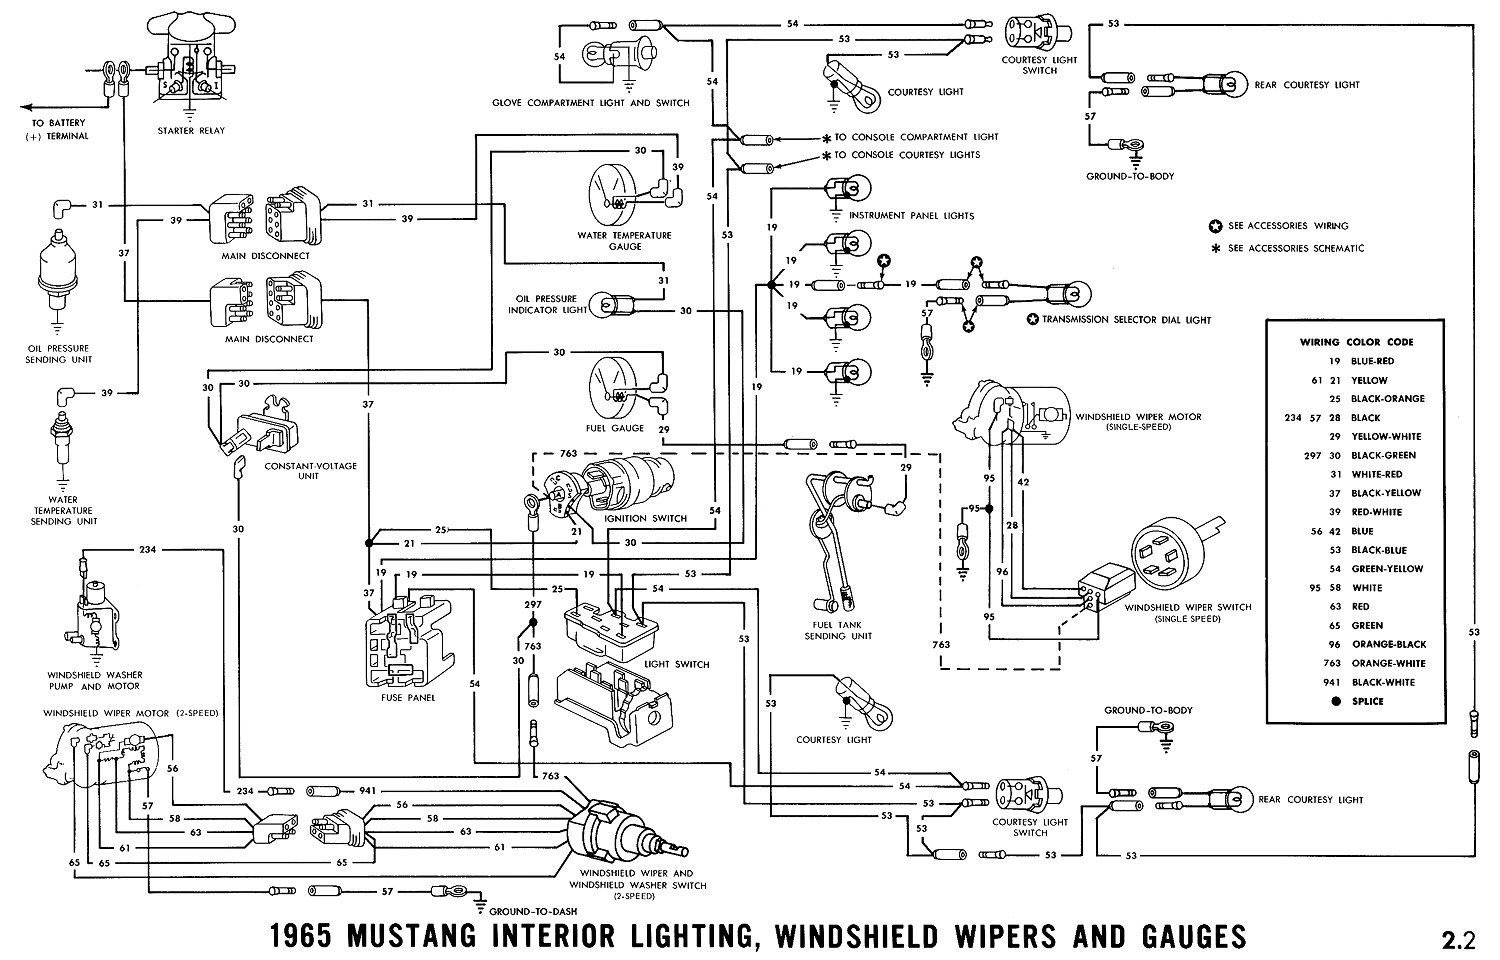 1965g mustang wiring diagrams mustang engine diagram \u2022 free wiring 2005 ford mustang instrument cluster wiring diagram at crackthecode.co